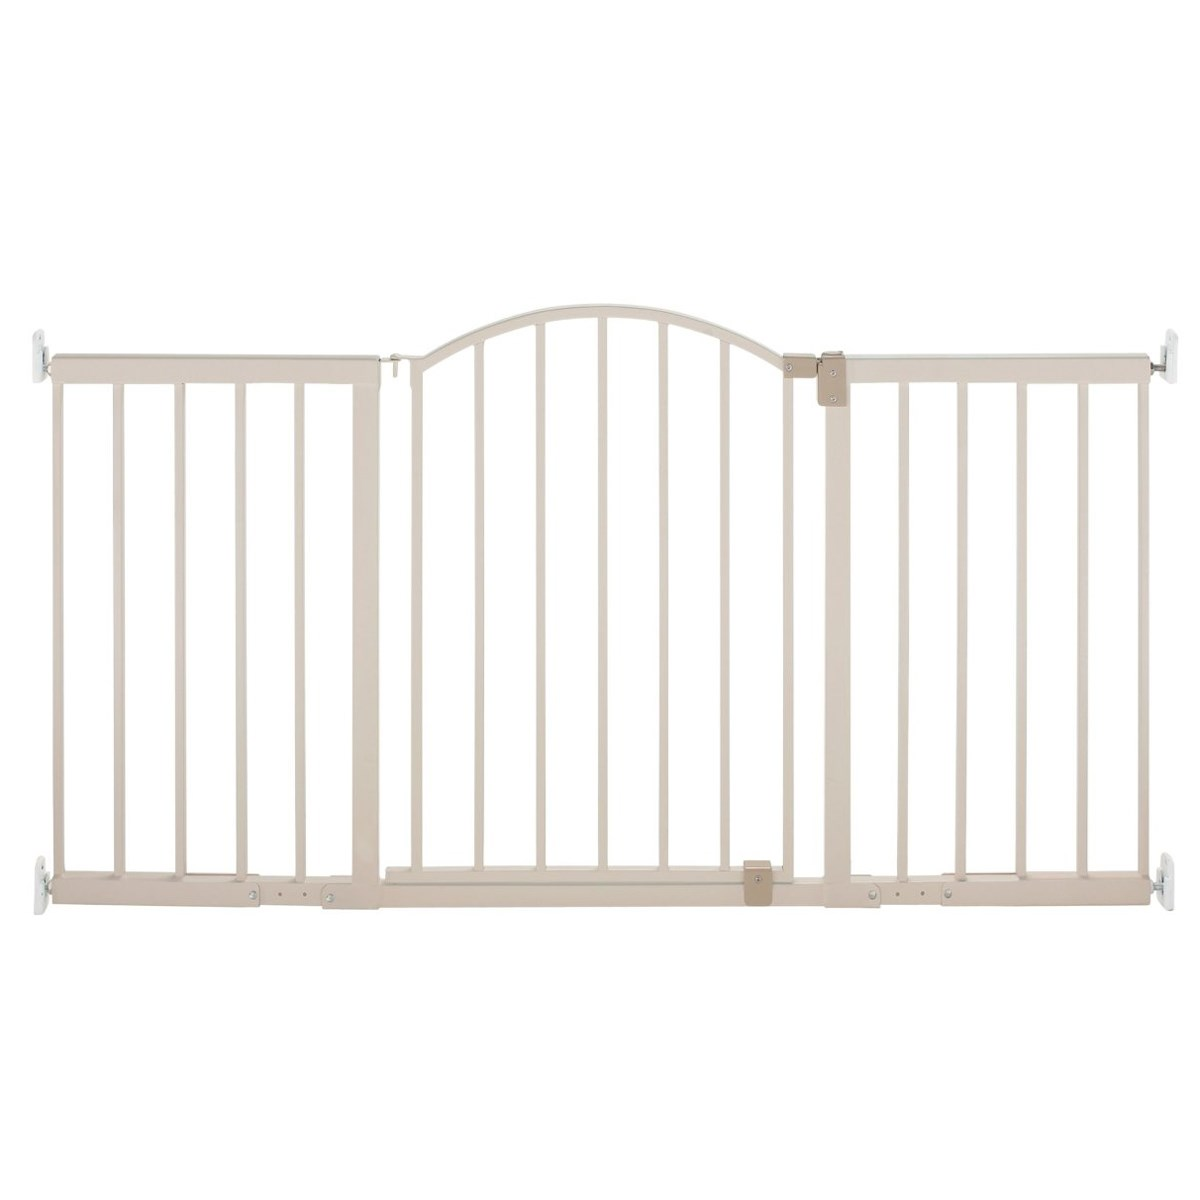 Cua chan an toan kho rong Summer Sure & Secure 6 Foot Metal Expansion Gate